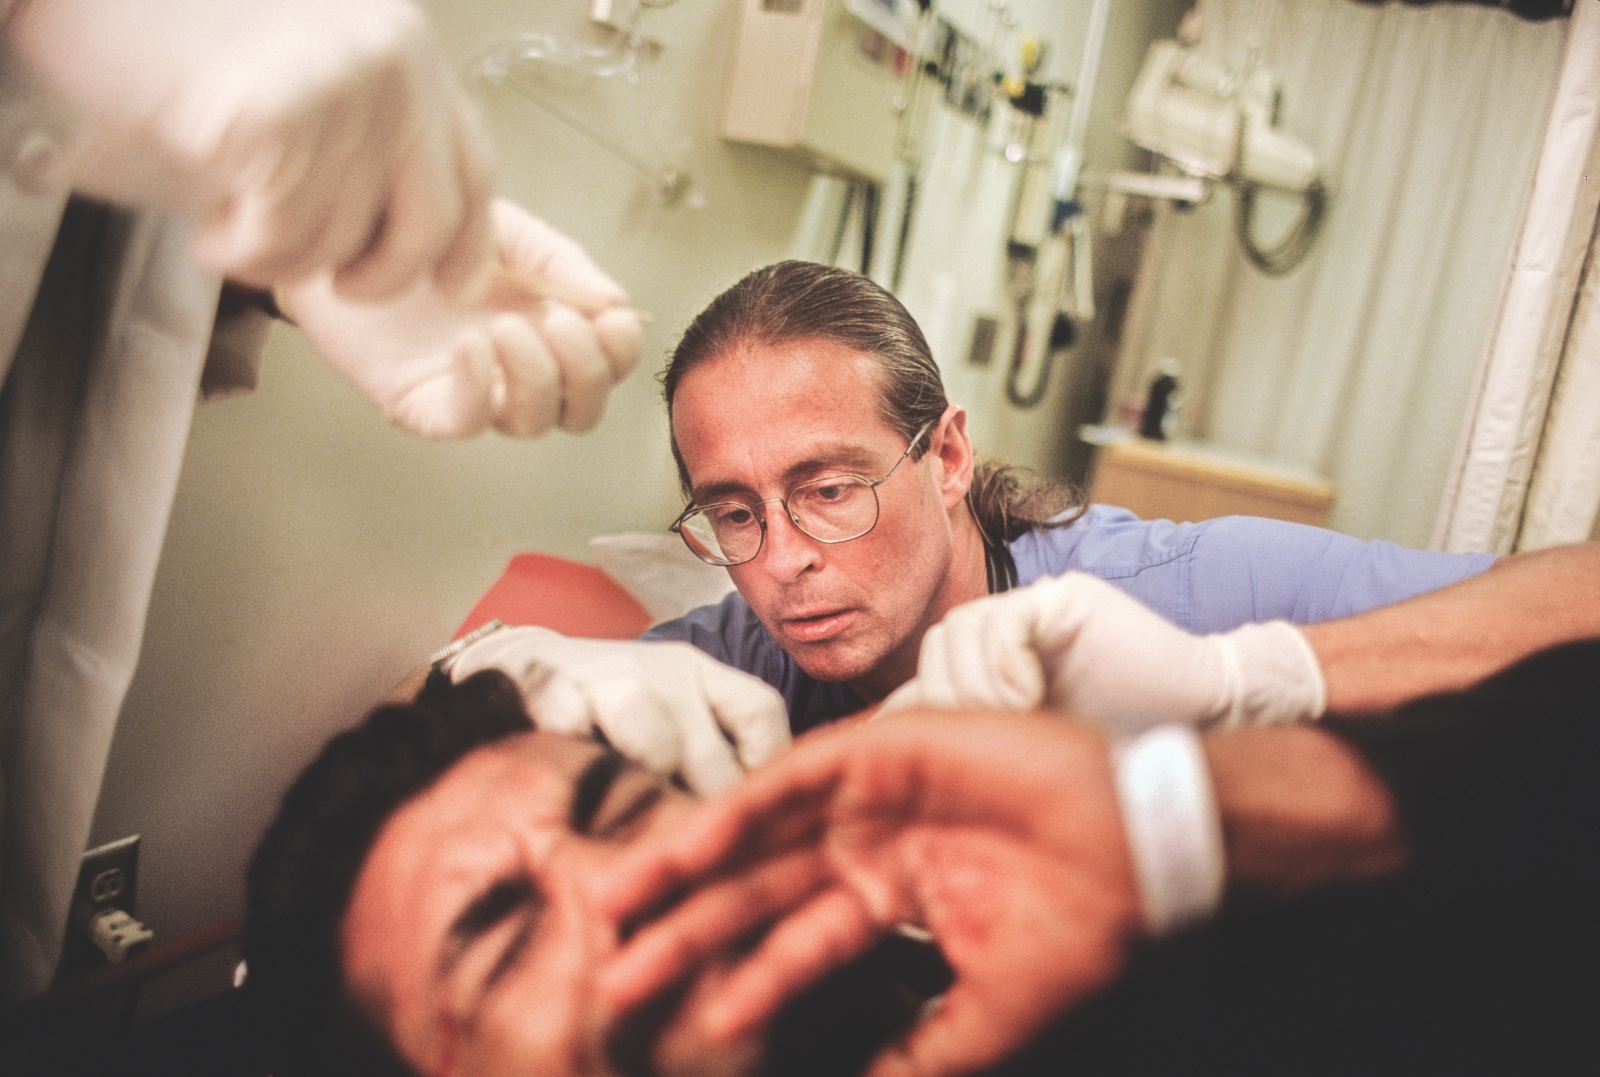 Wintemute performs a surgical procedure on a patient at the UC Davis Medical Center in 1997. (Photo by Mark Richards)